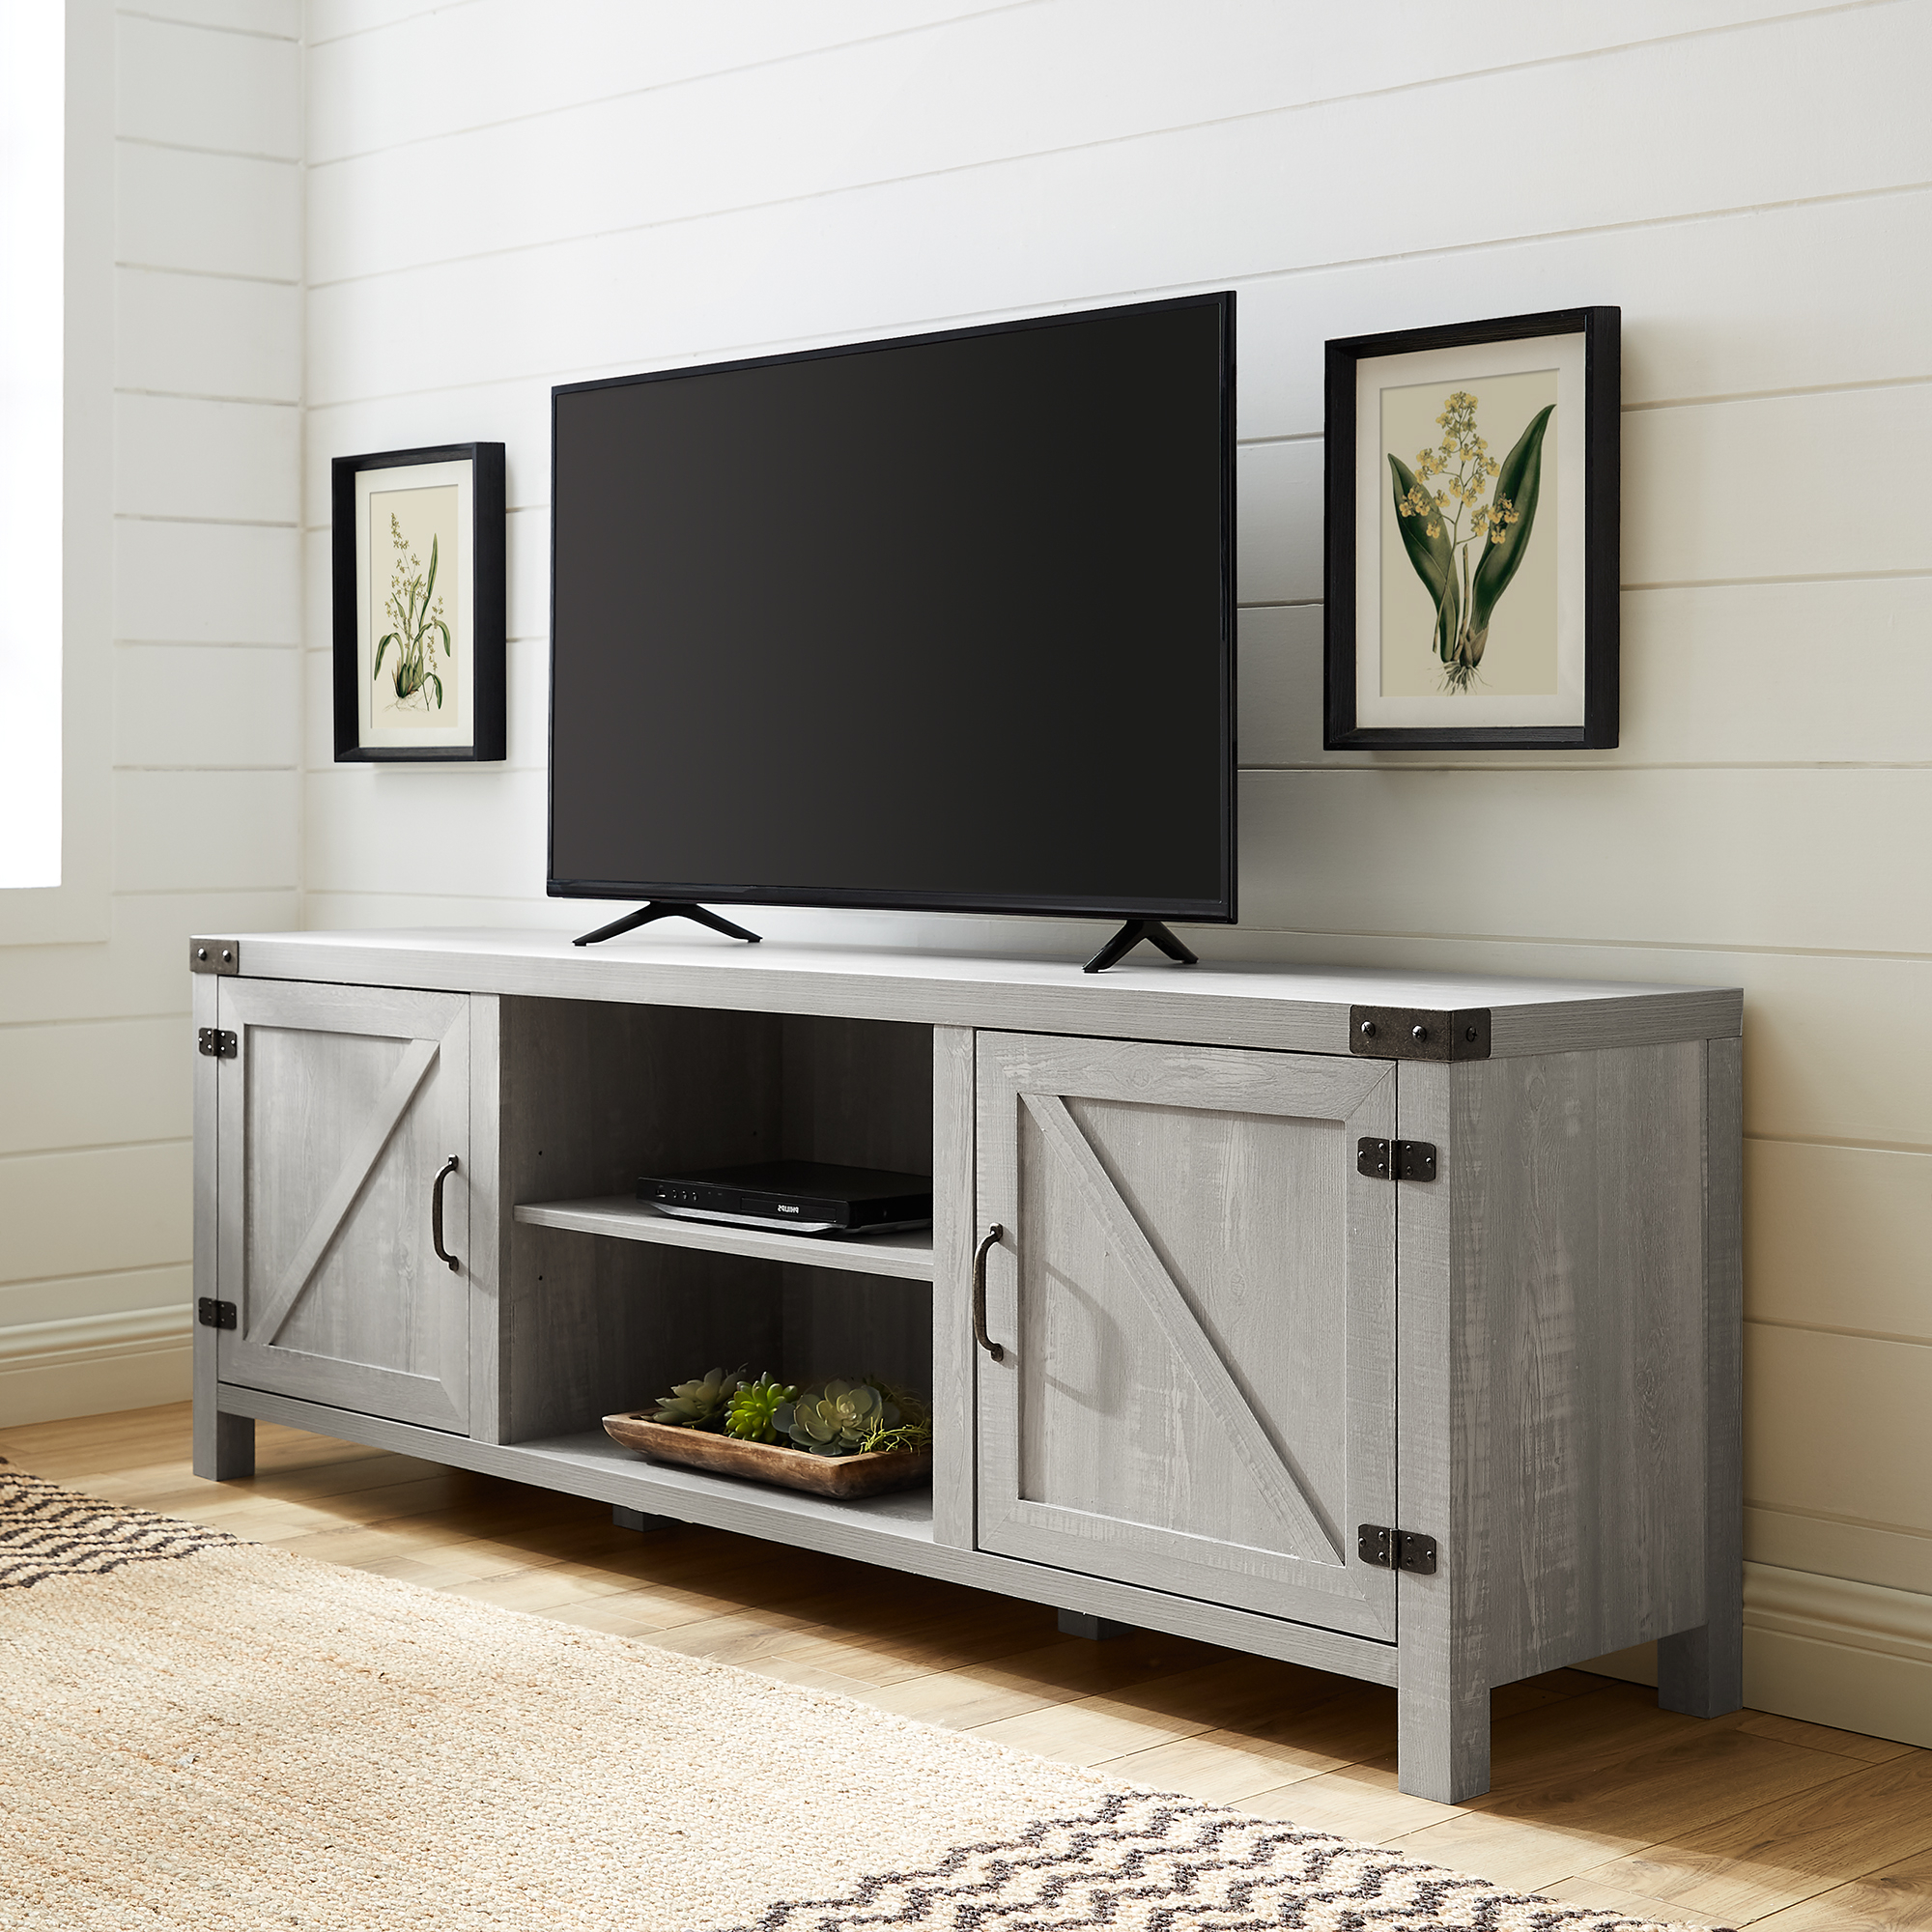 """Woven Paths Farmhouse Barn Door Tv Stand For Tvs Up To 80 With Regard To Current Kamari Tv Stands For Tvs Up To 58"""" (View 1 of 25)"""